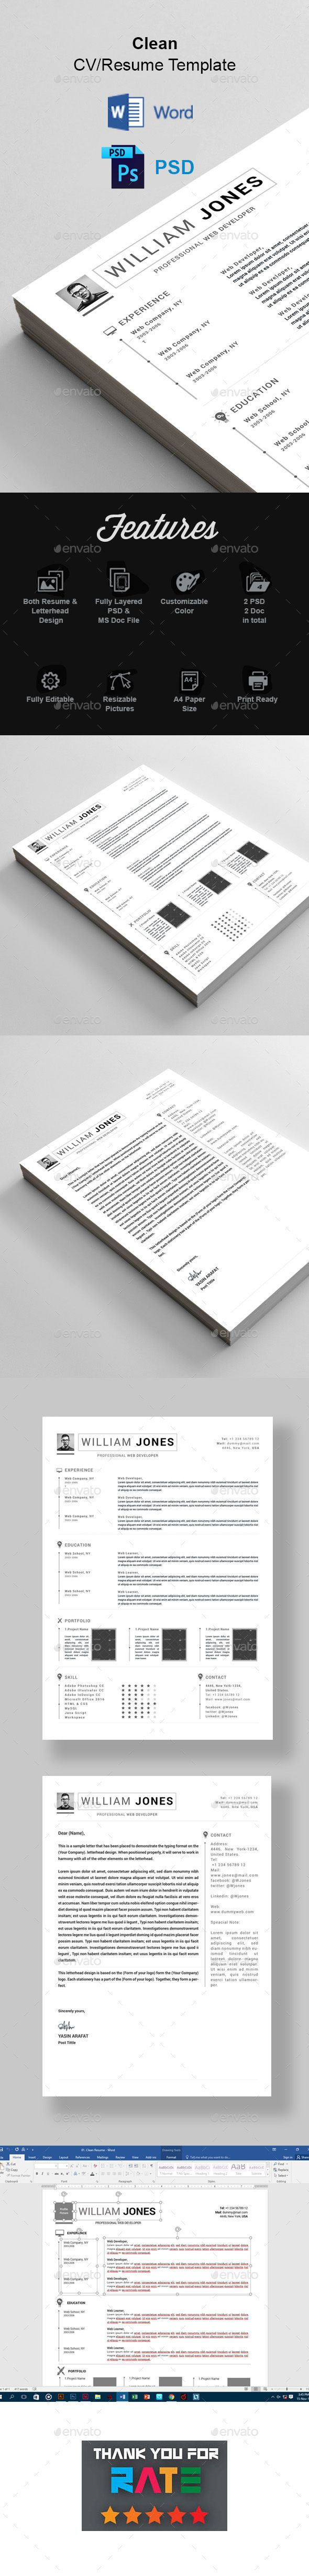 Clean Resume & Letterhead — Photoshop PSD #clean resume #reference • Download ➝ https://graphicriver.net/item/clean-resume-letterhead/18889502?ref=pxcr